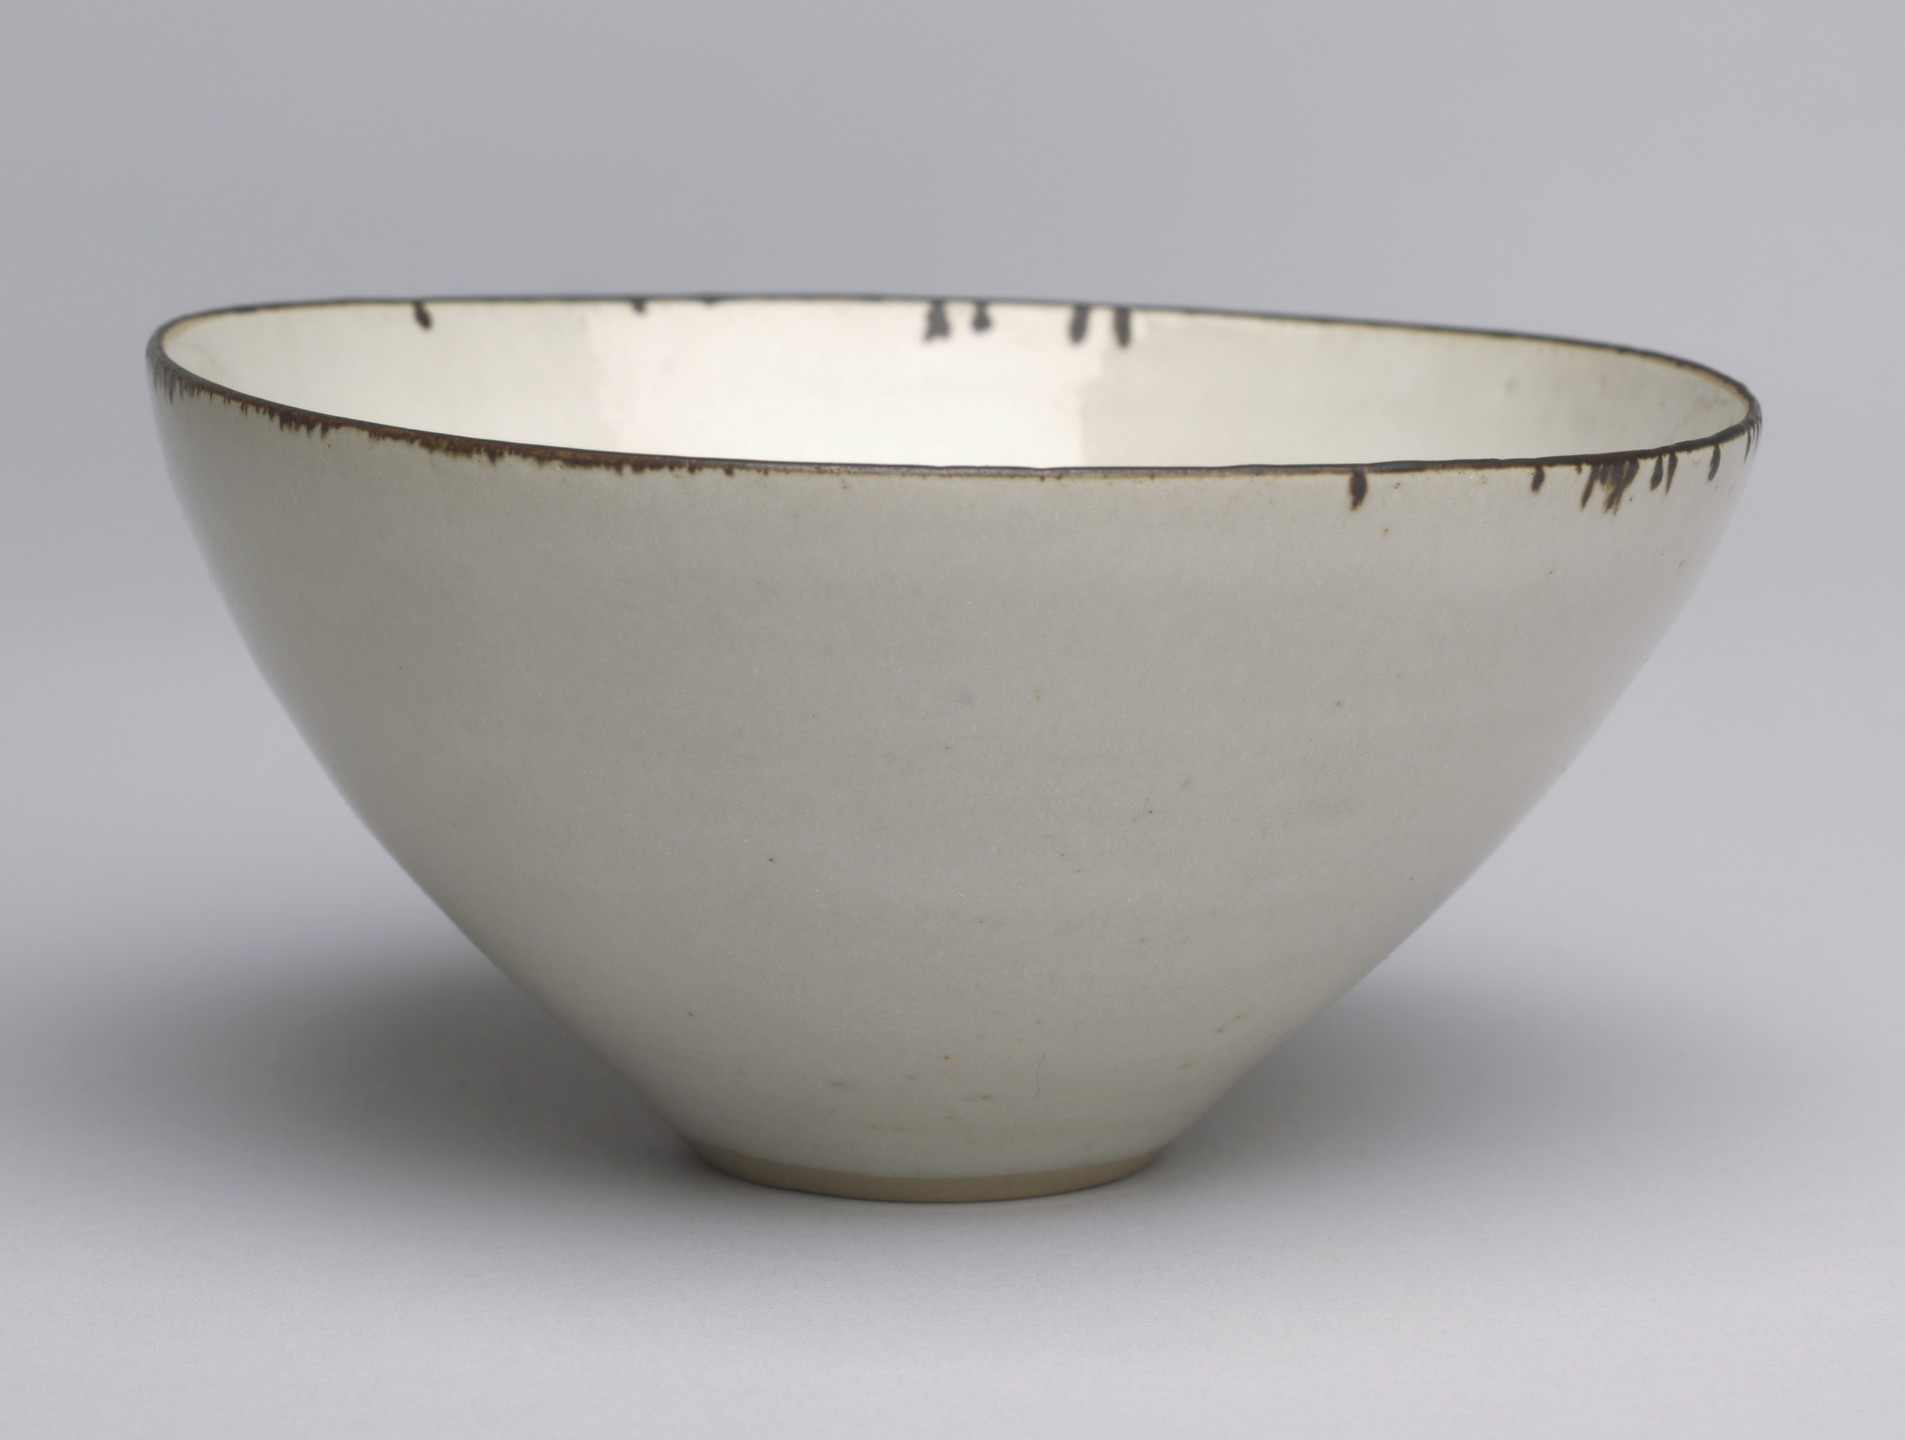 Lucie Rie. Bowl. 1952-54